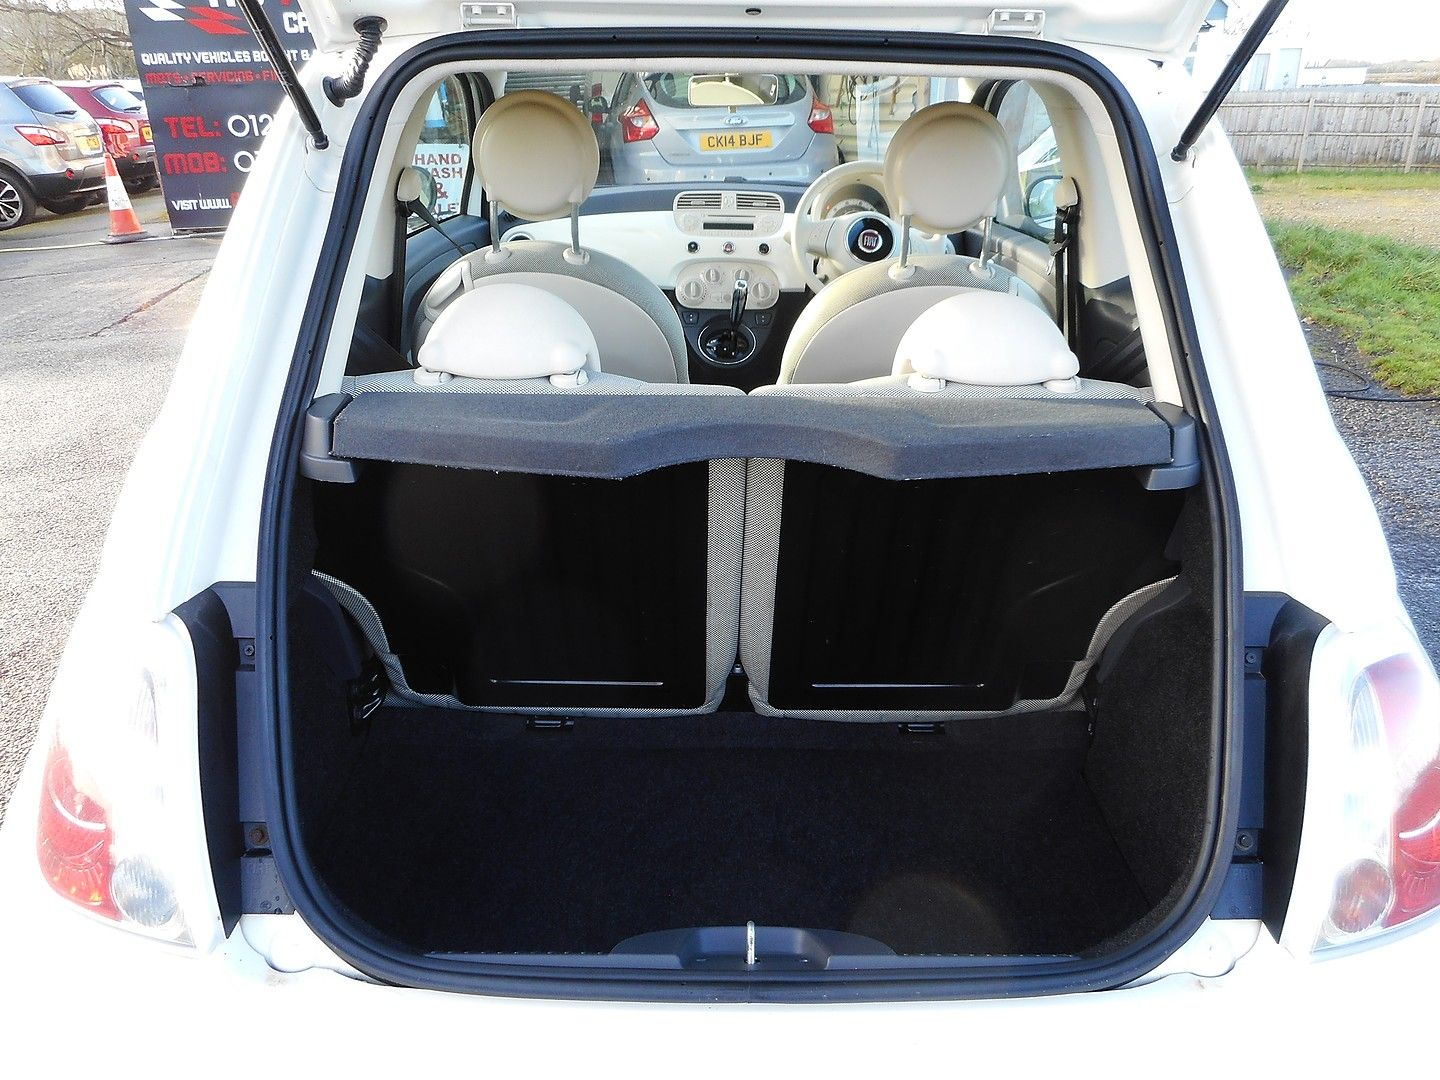 FIAT 500 1.2i Lounge S/S automatic (2013) - Picture 20